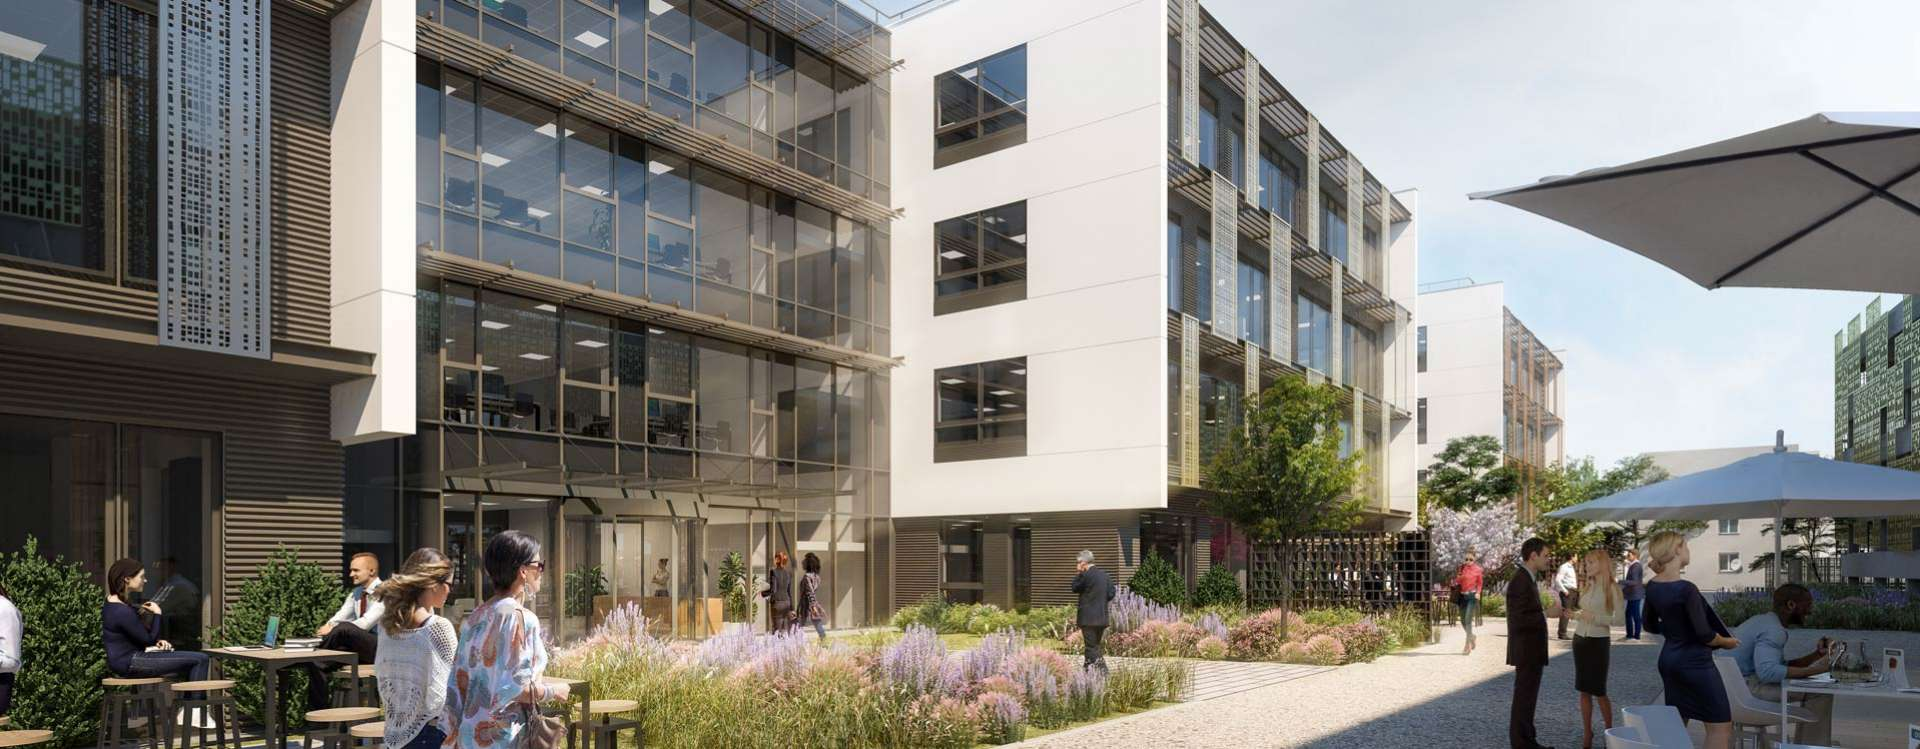 GA Smart Building lance le Campus « NOW Living Spaces » à Toulouse